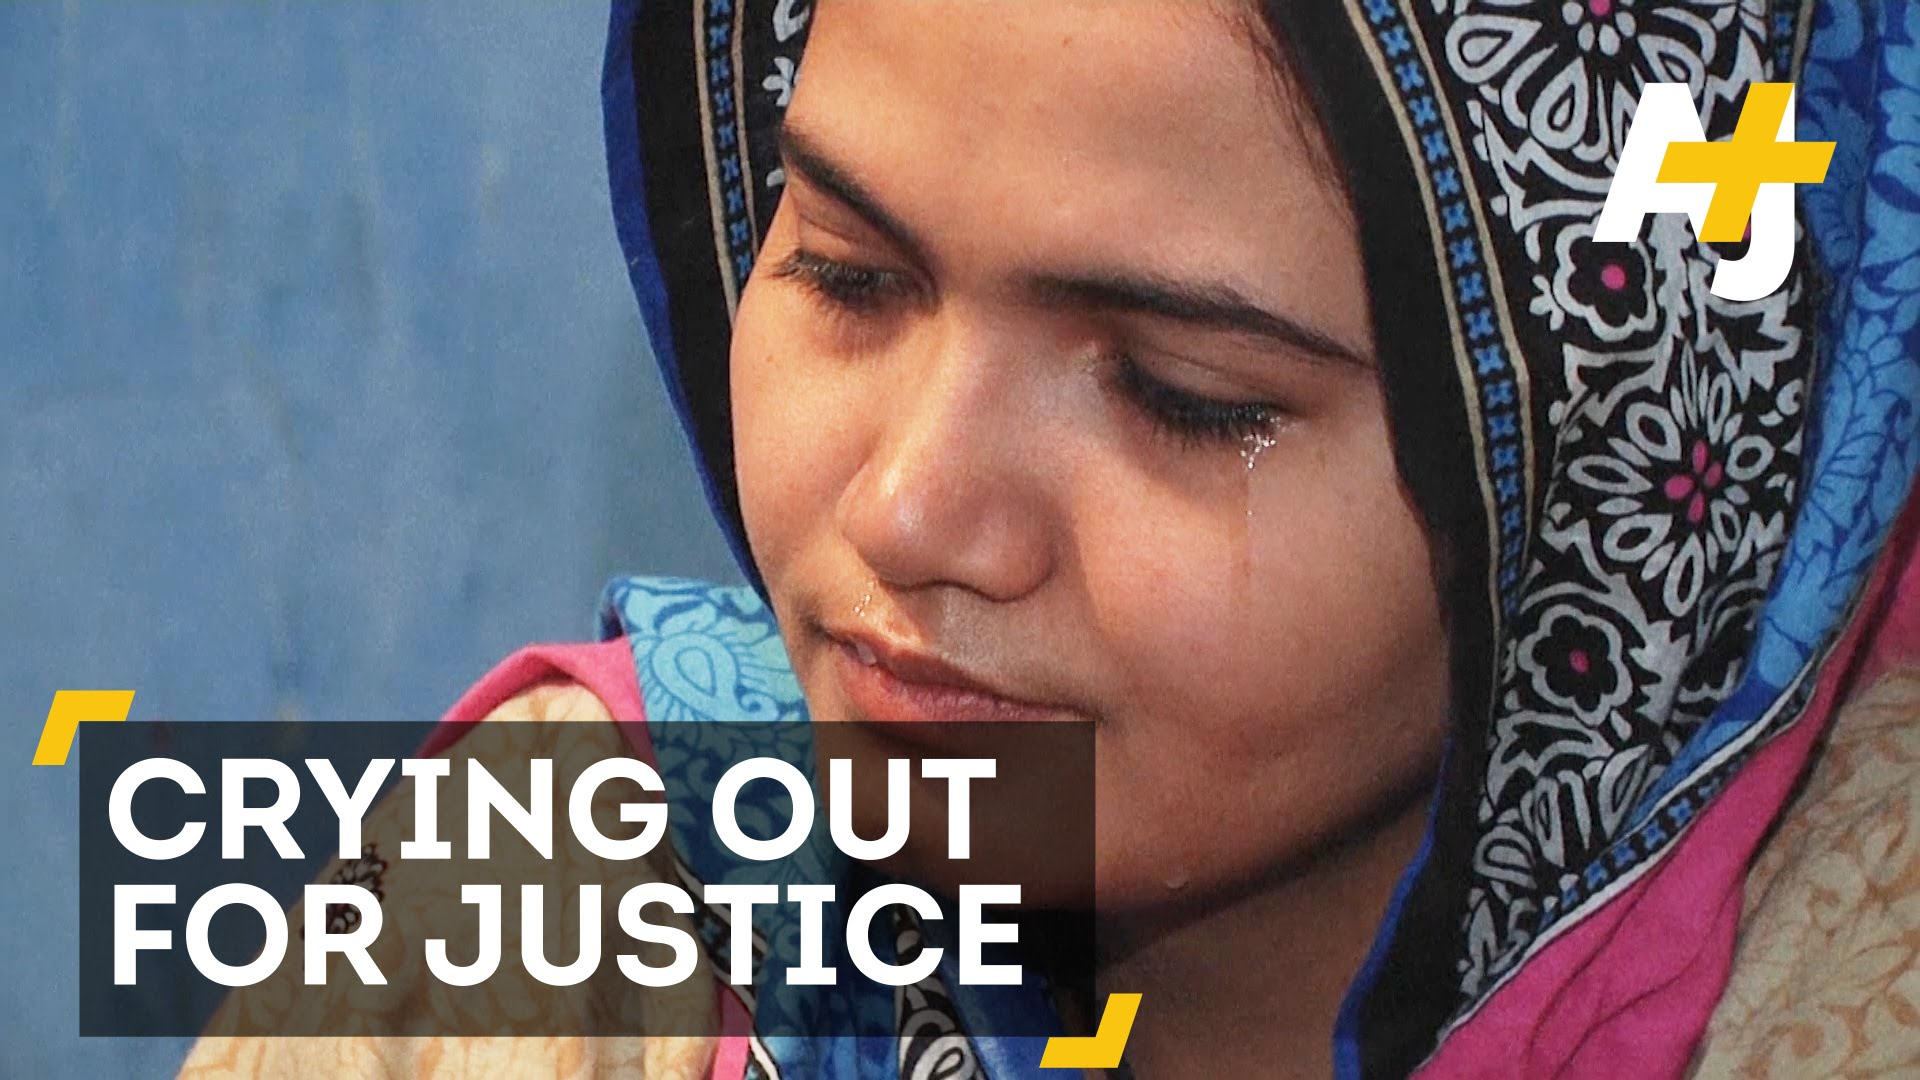 Pakistan: Abused Women Fight for Justice